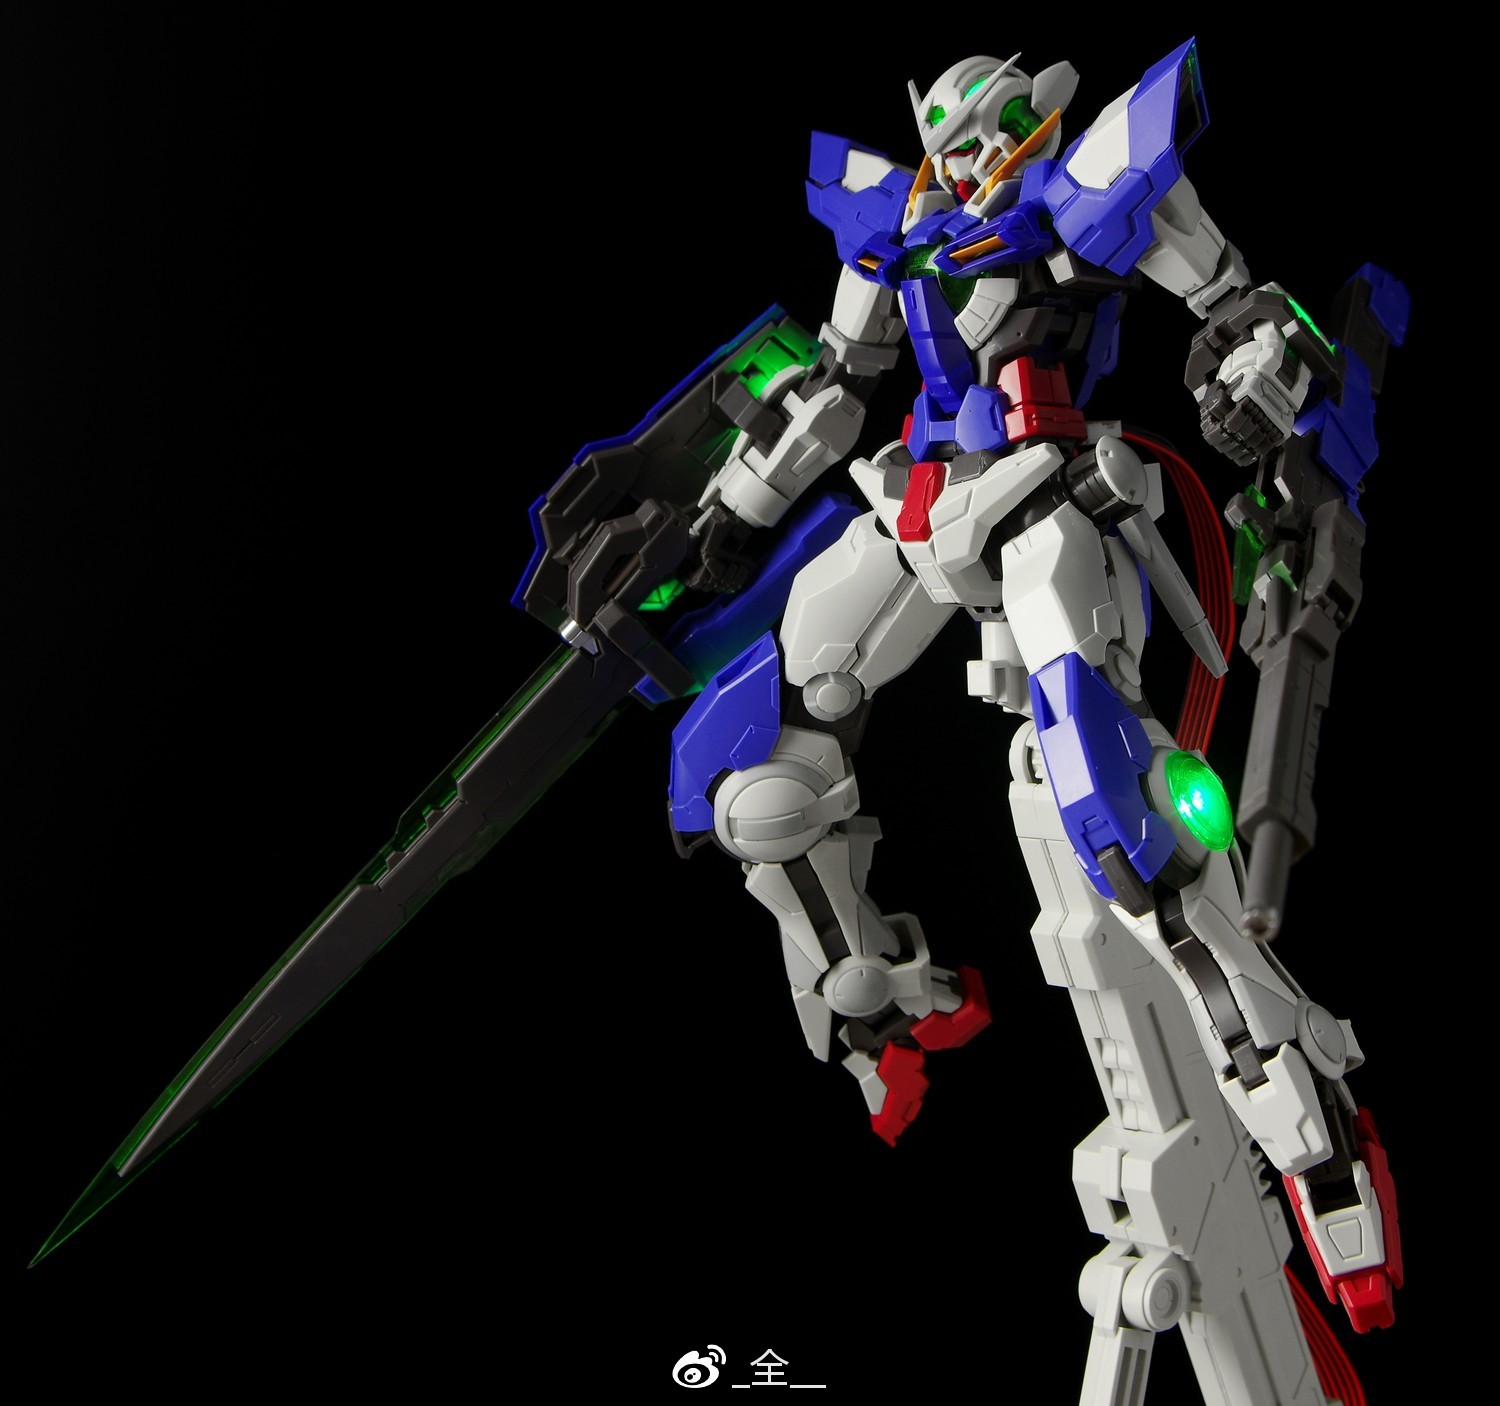 S269_mg_exia_led_hobby_star_inask_105.jpg